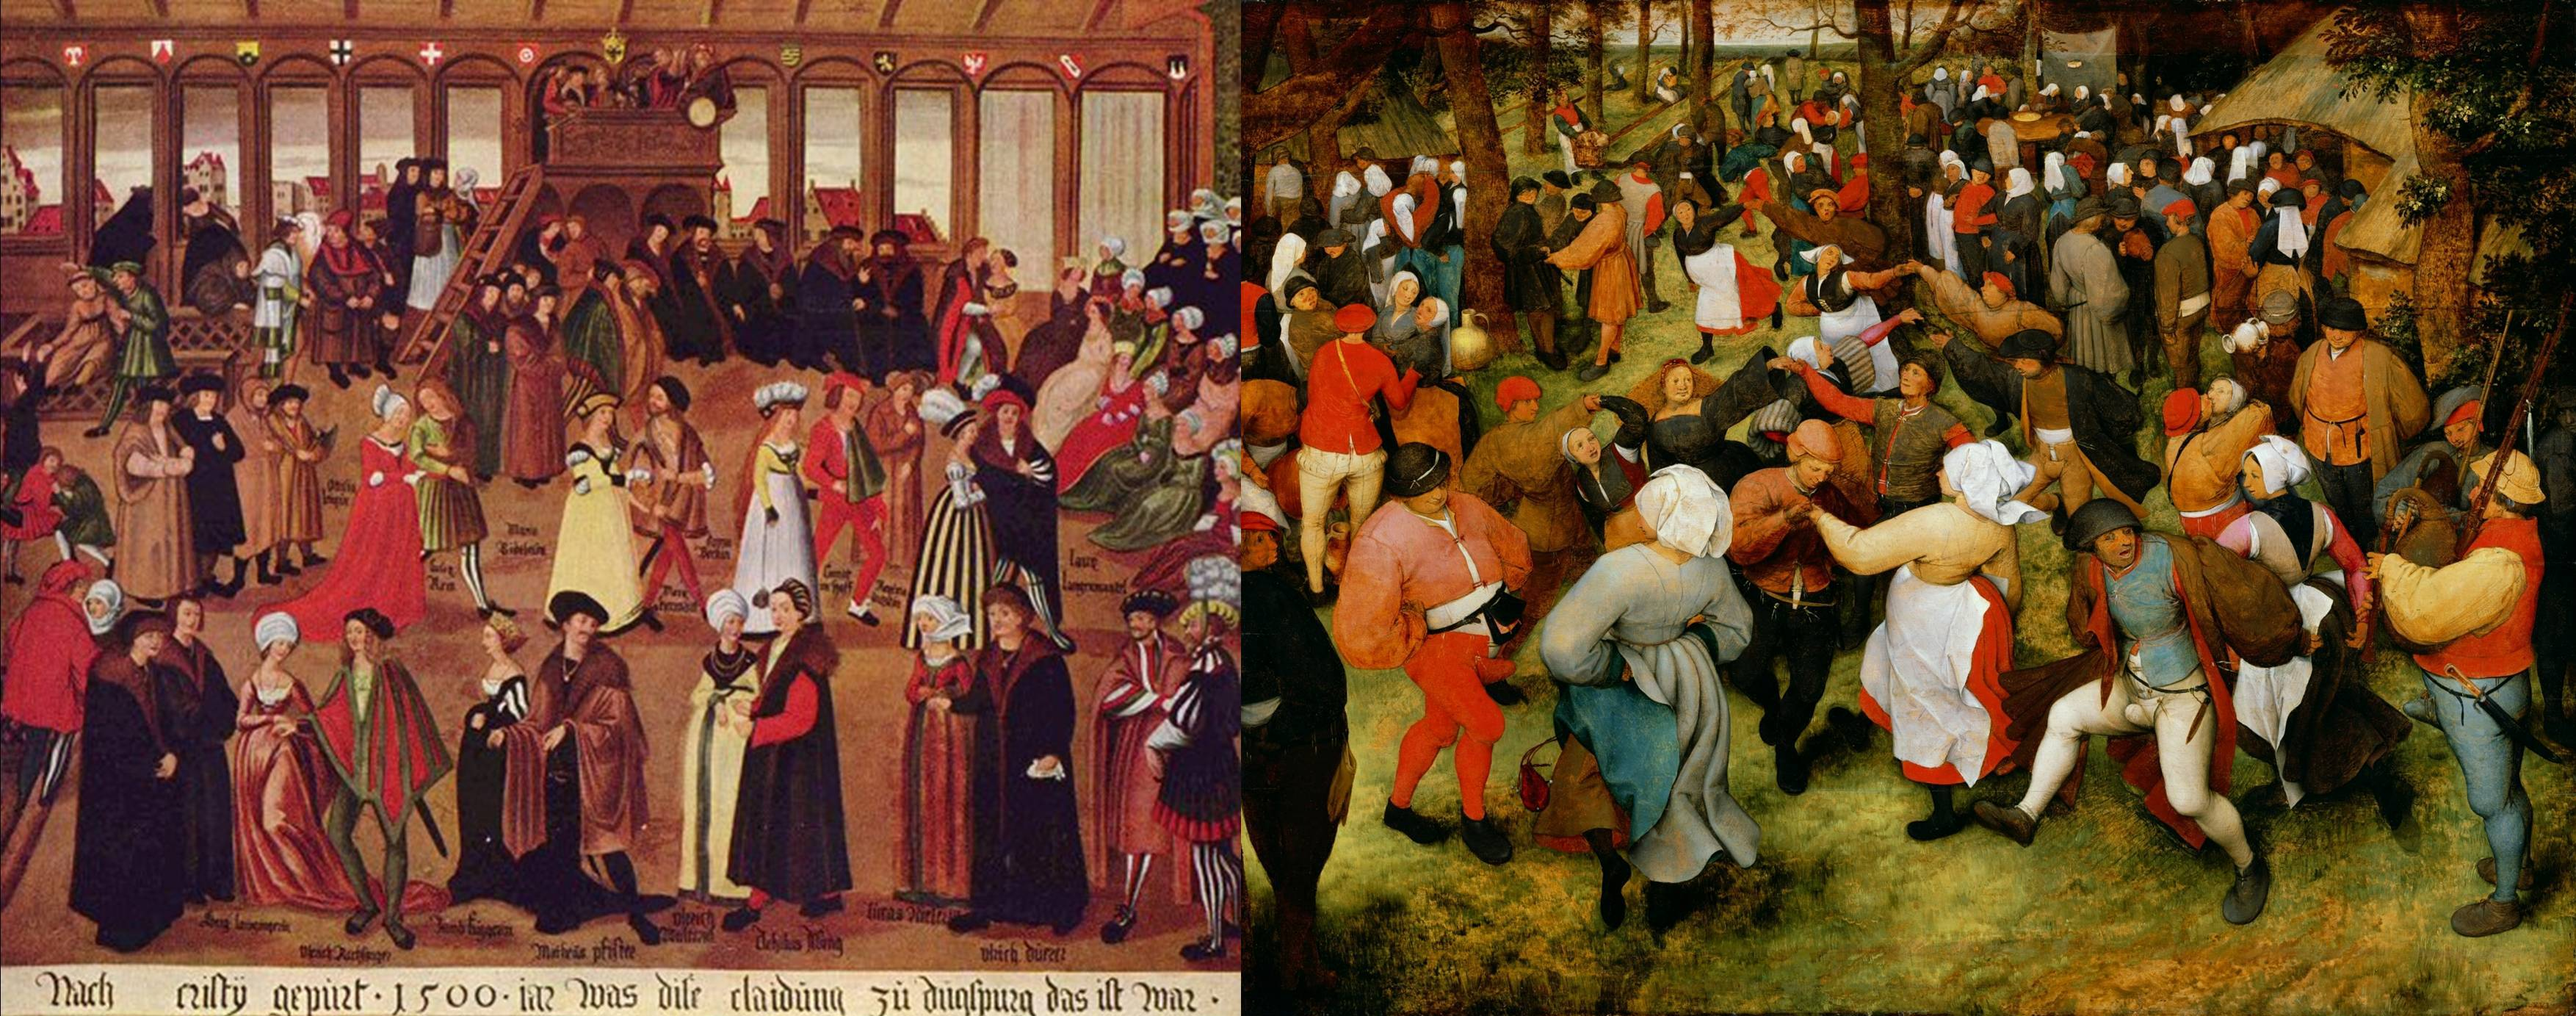 change in medieval and renaissance paintings essay Read this essay on renaissance arts will be focussing on the comparison between two paintings from the renaissance the classical period brought change in the.